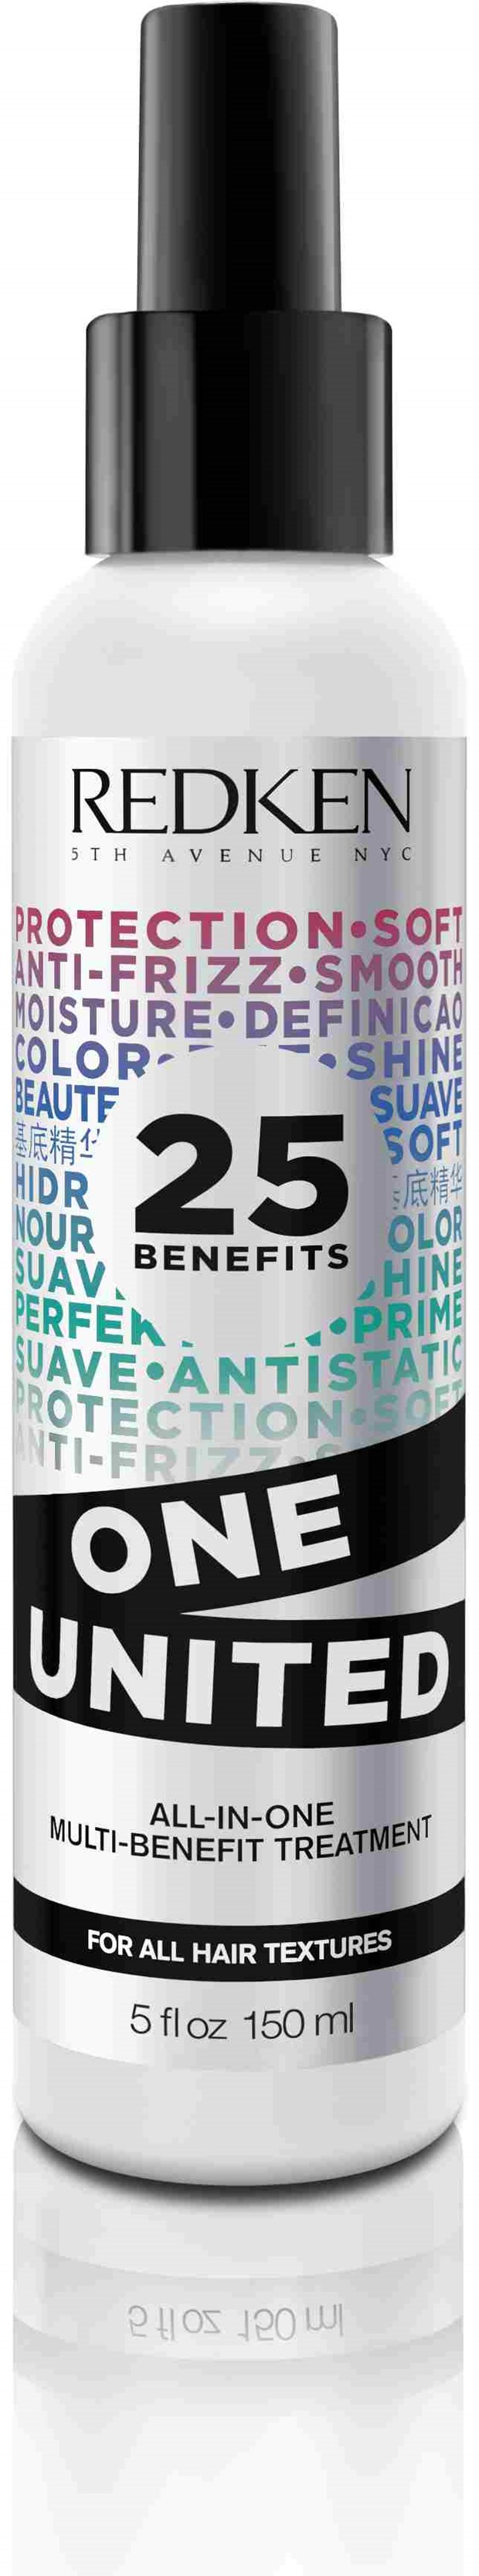 One United All-In-One Multi-Benefit Hair Treatment